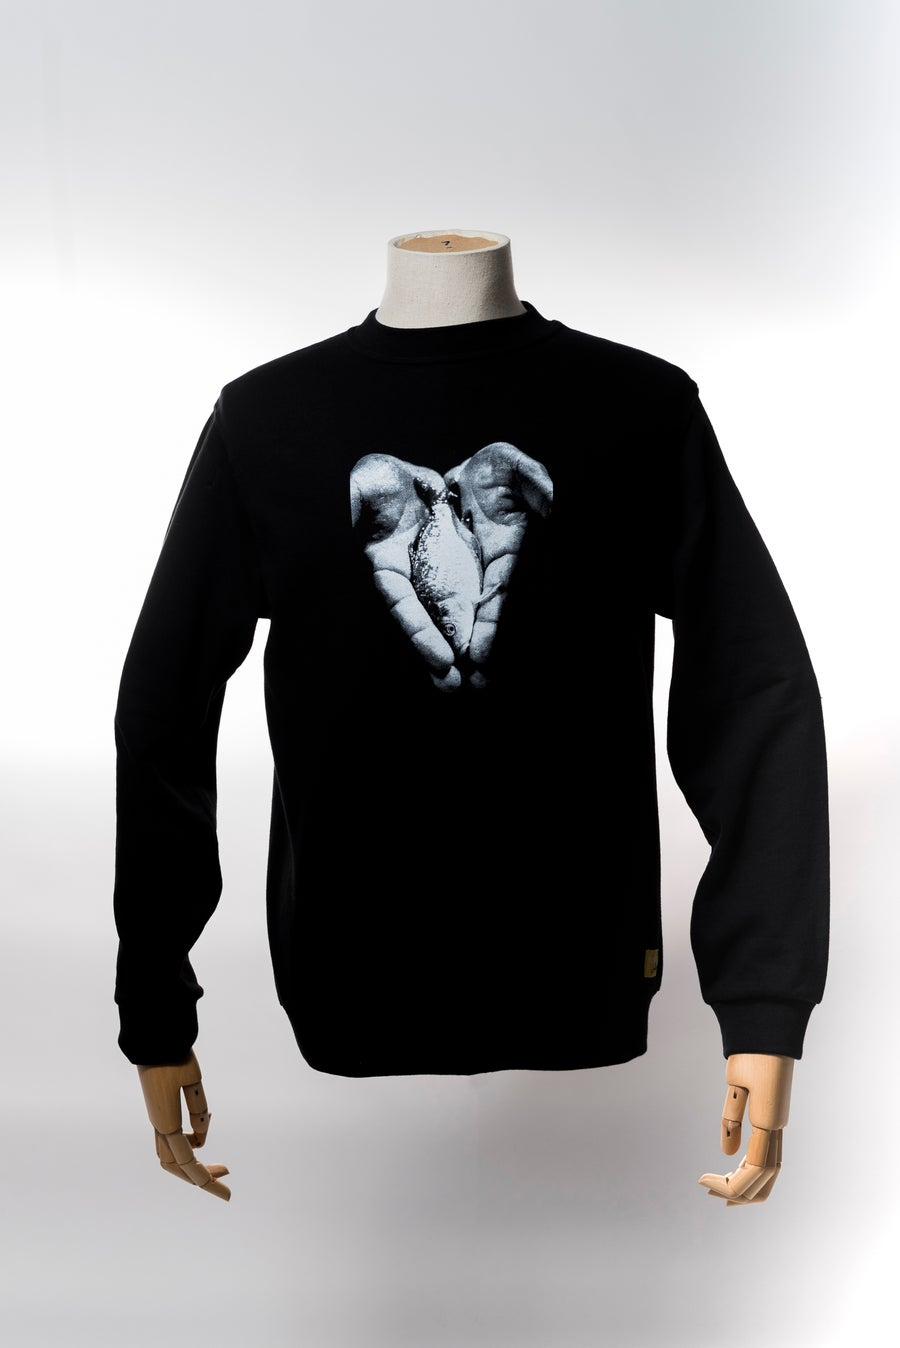 Image of Monkey Climber Hand of Hope crewneck I Black - Burgundy